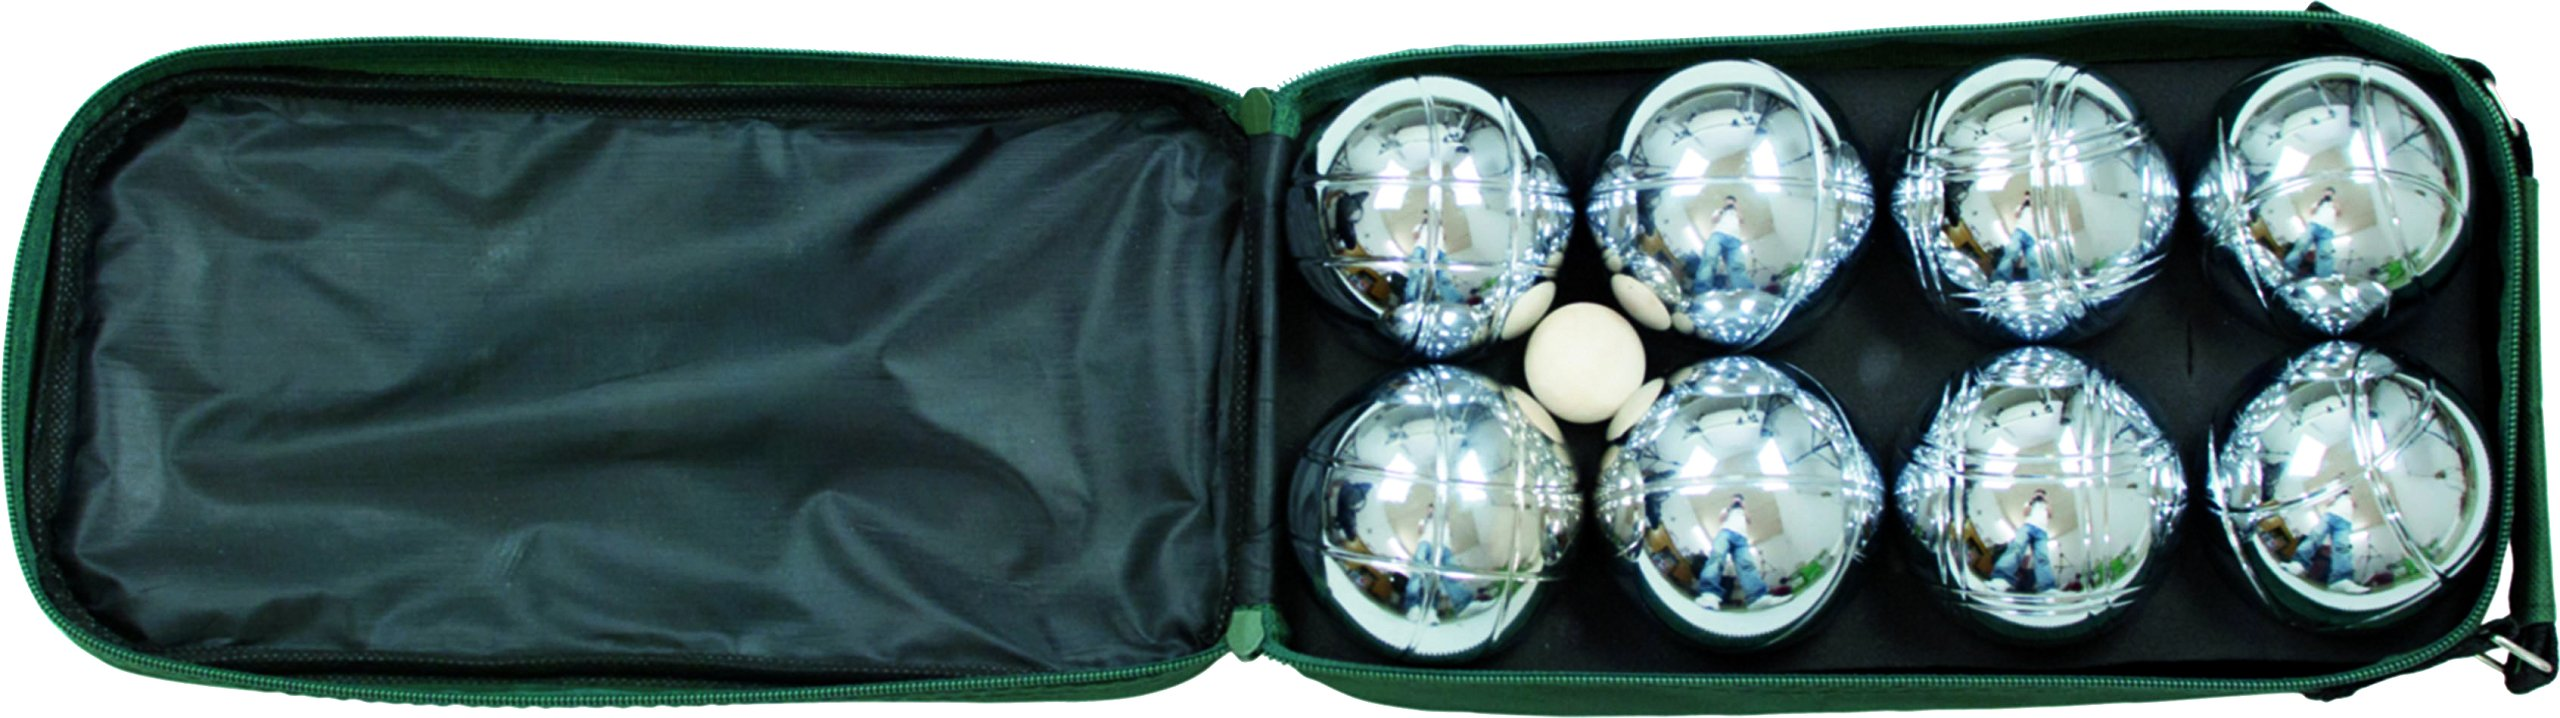 John N. Hansen Classic Game Collection 8 Ball 73mm Bocce/Boules Set with Canvas Storage Case product image